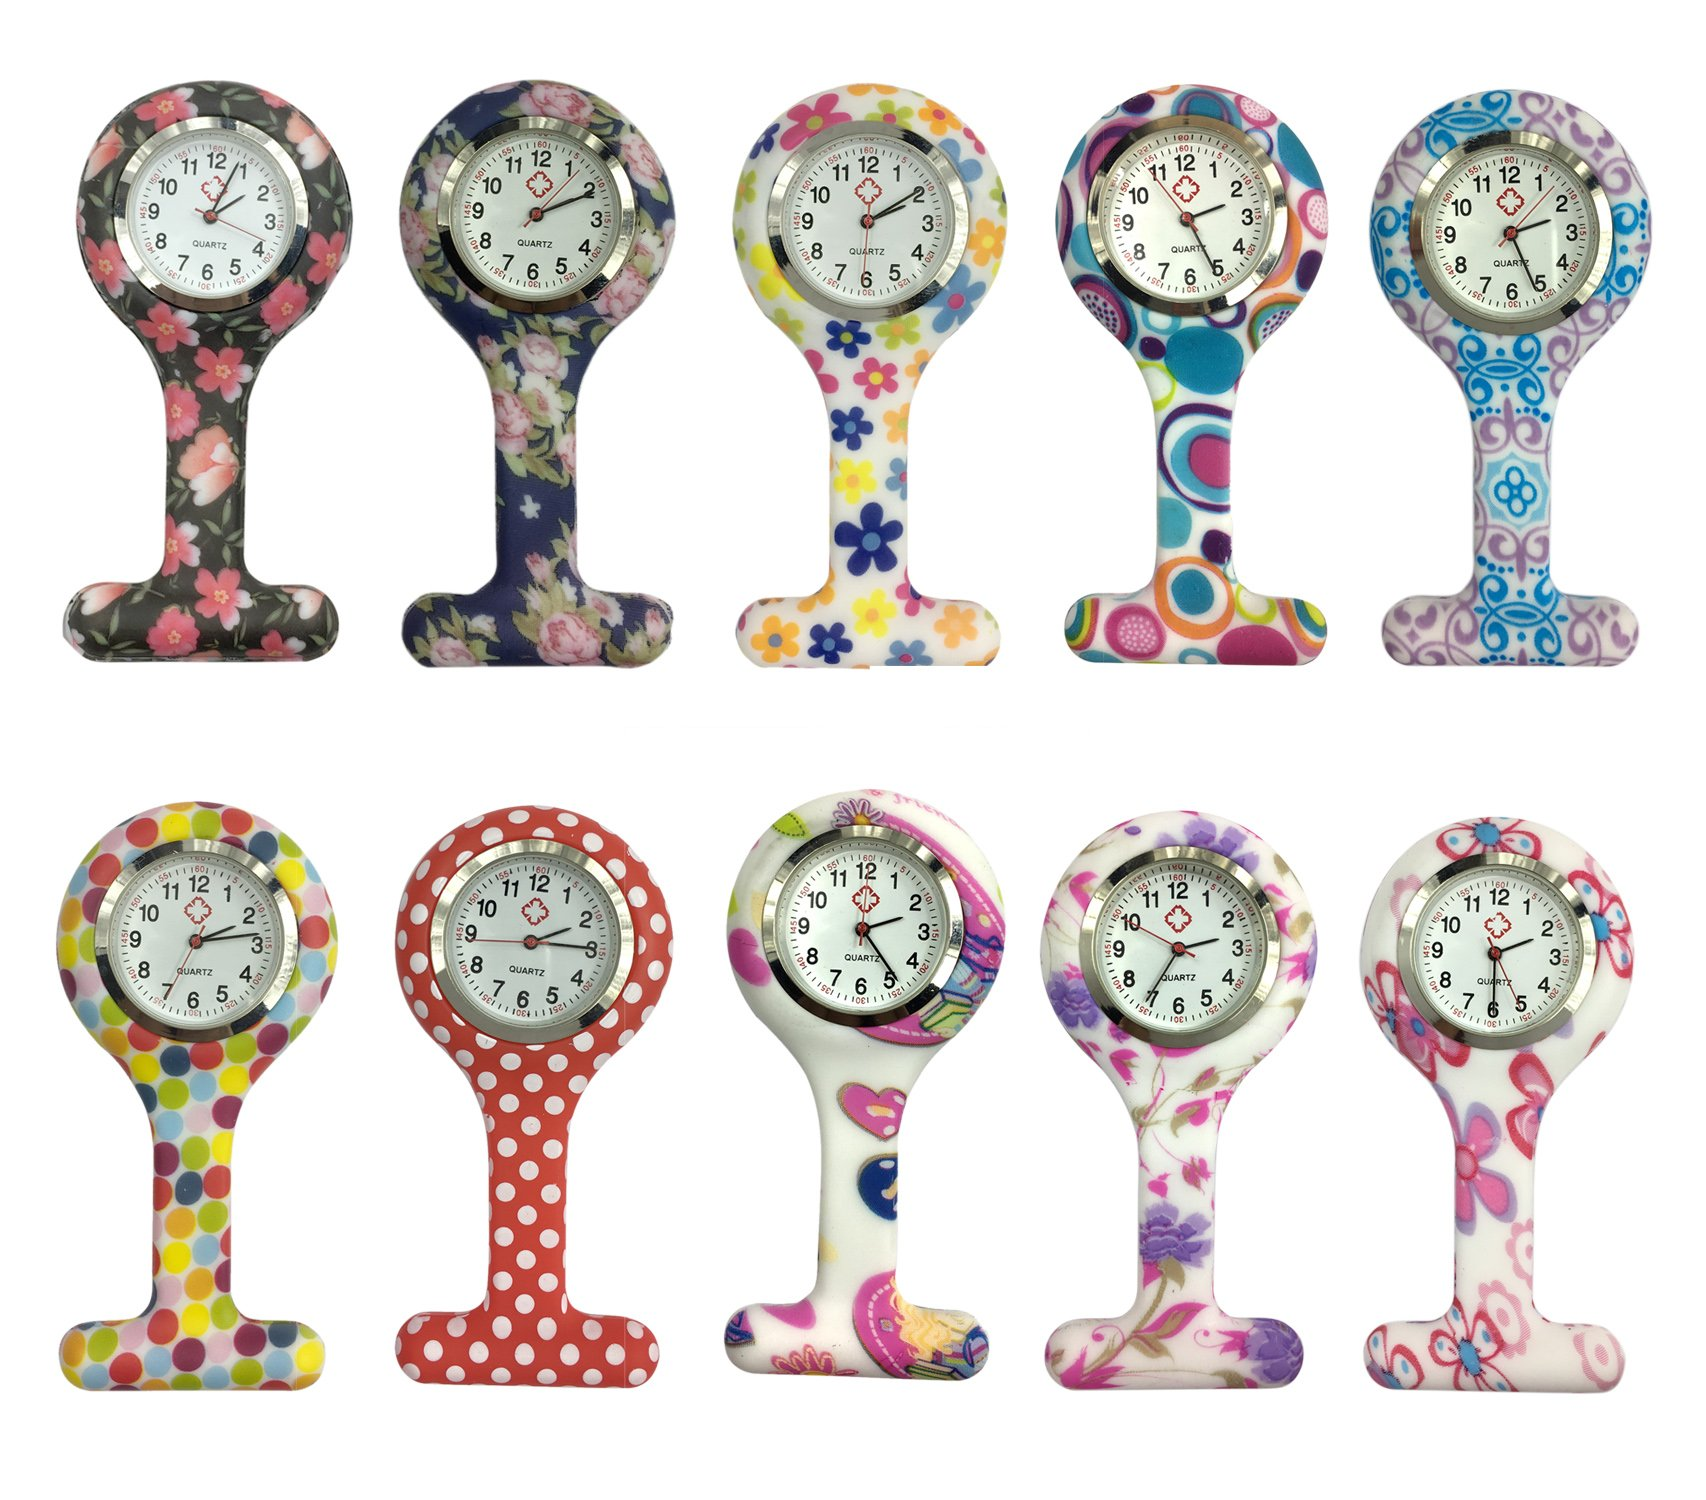 Square Silicone Nurse Fob Watch Pack of 10,Women Floral Clip-on Fob Brooch Hanging Pocket Watch